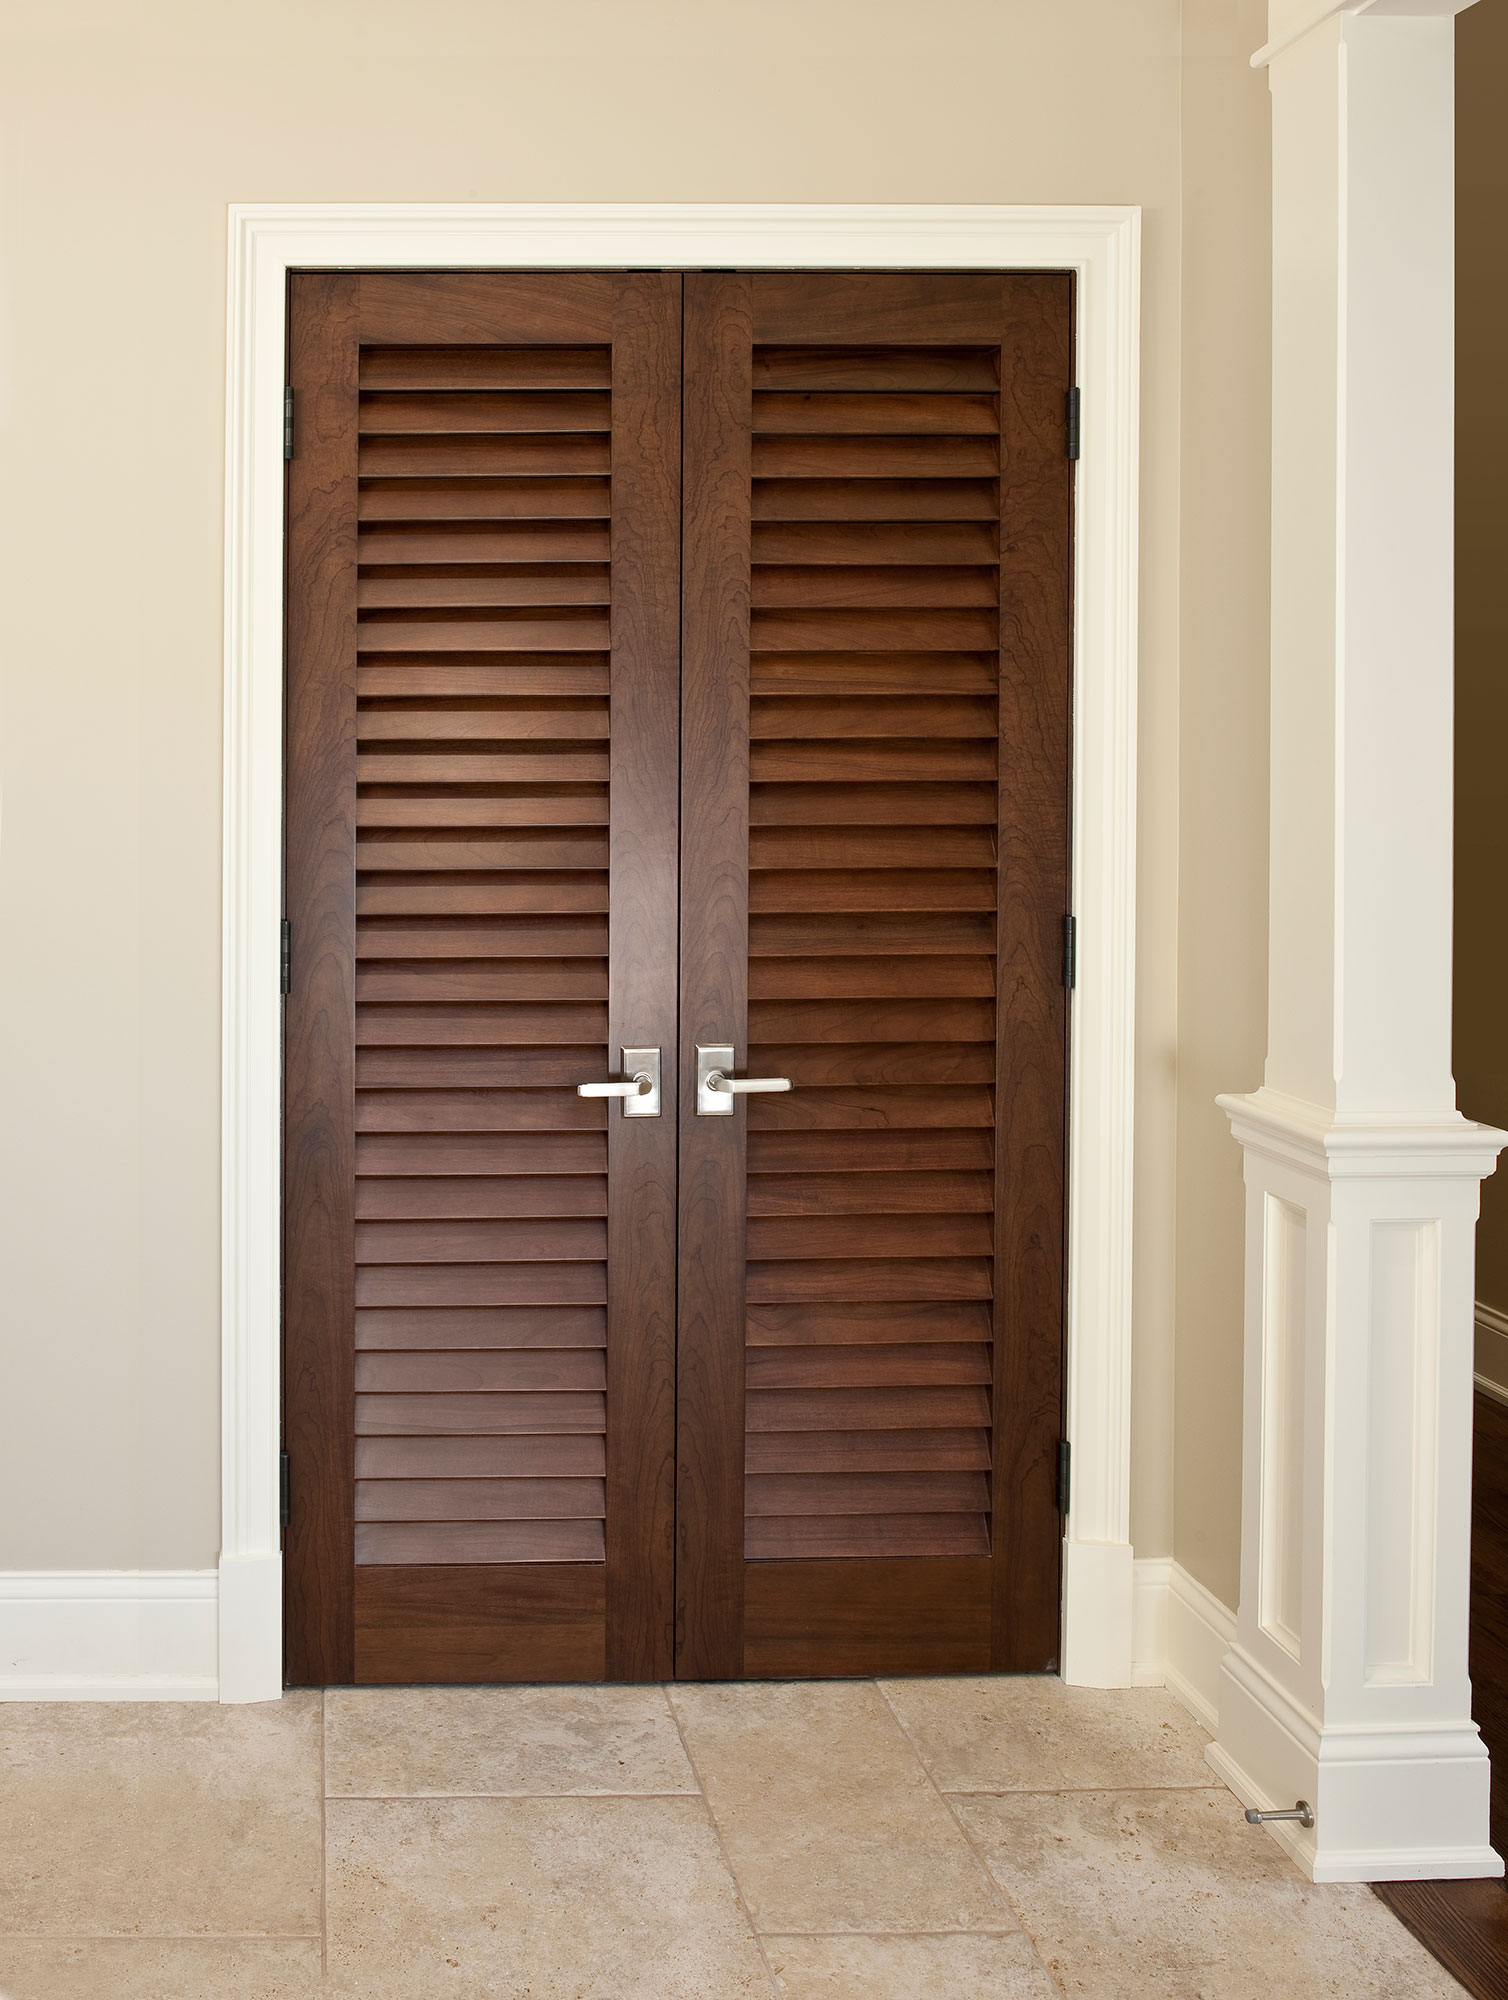 Custom Closet Door Make Rooms Contemporary And Modern